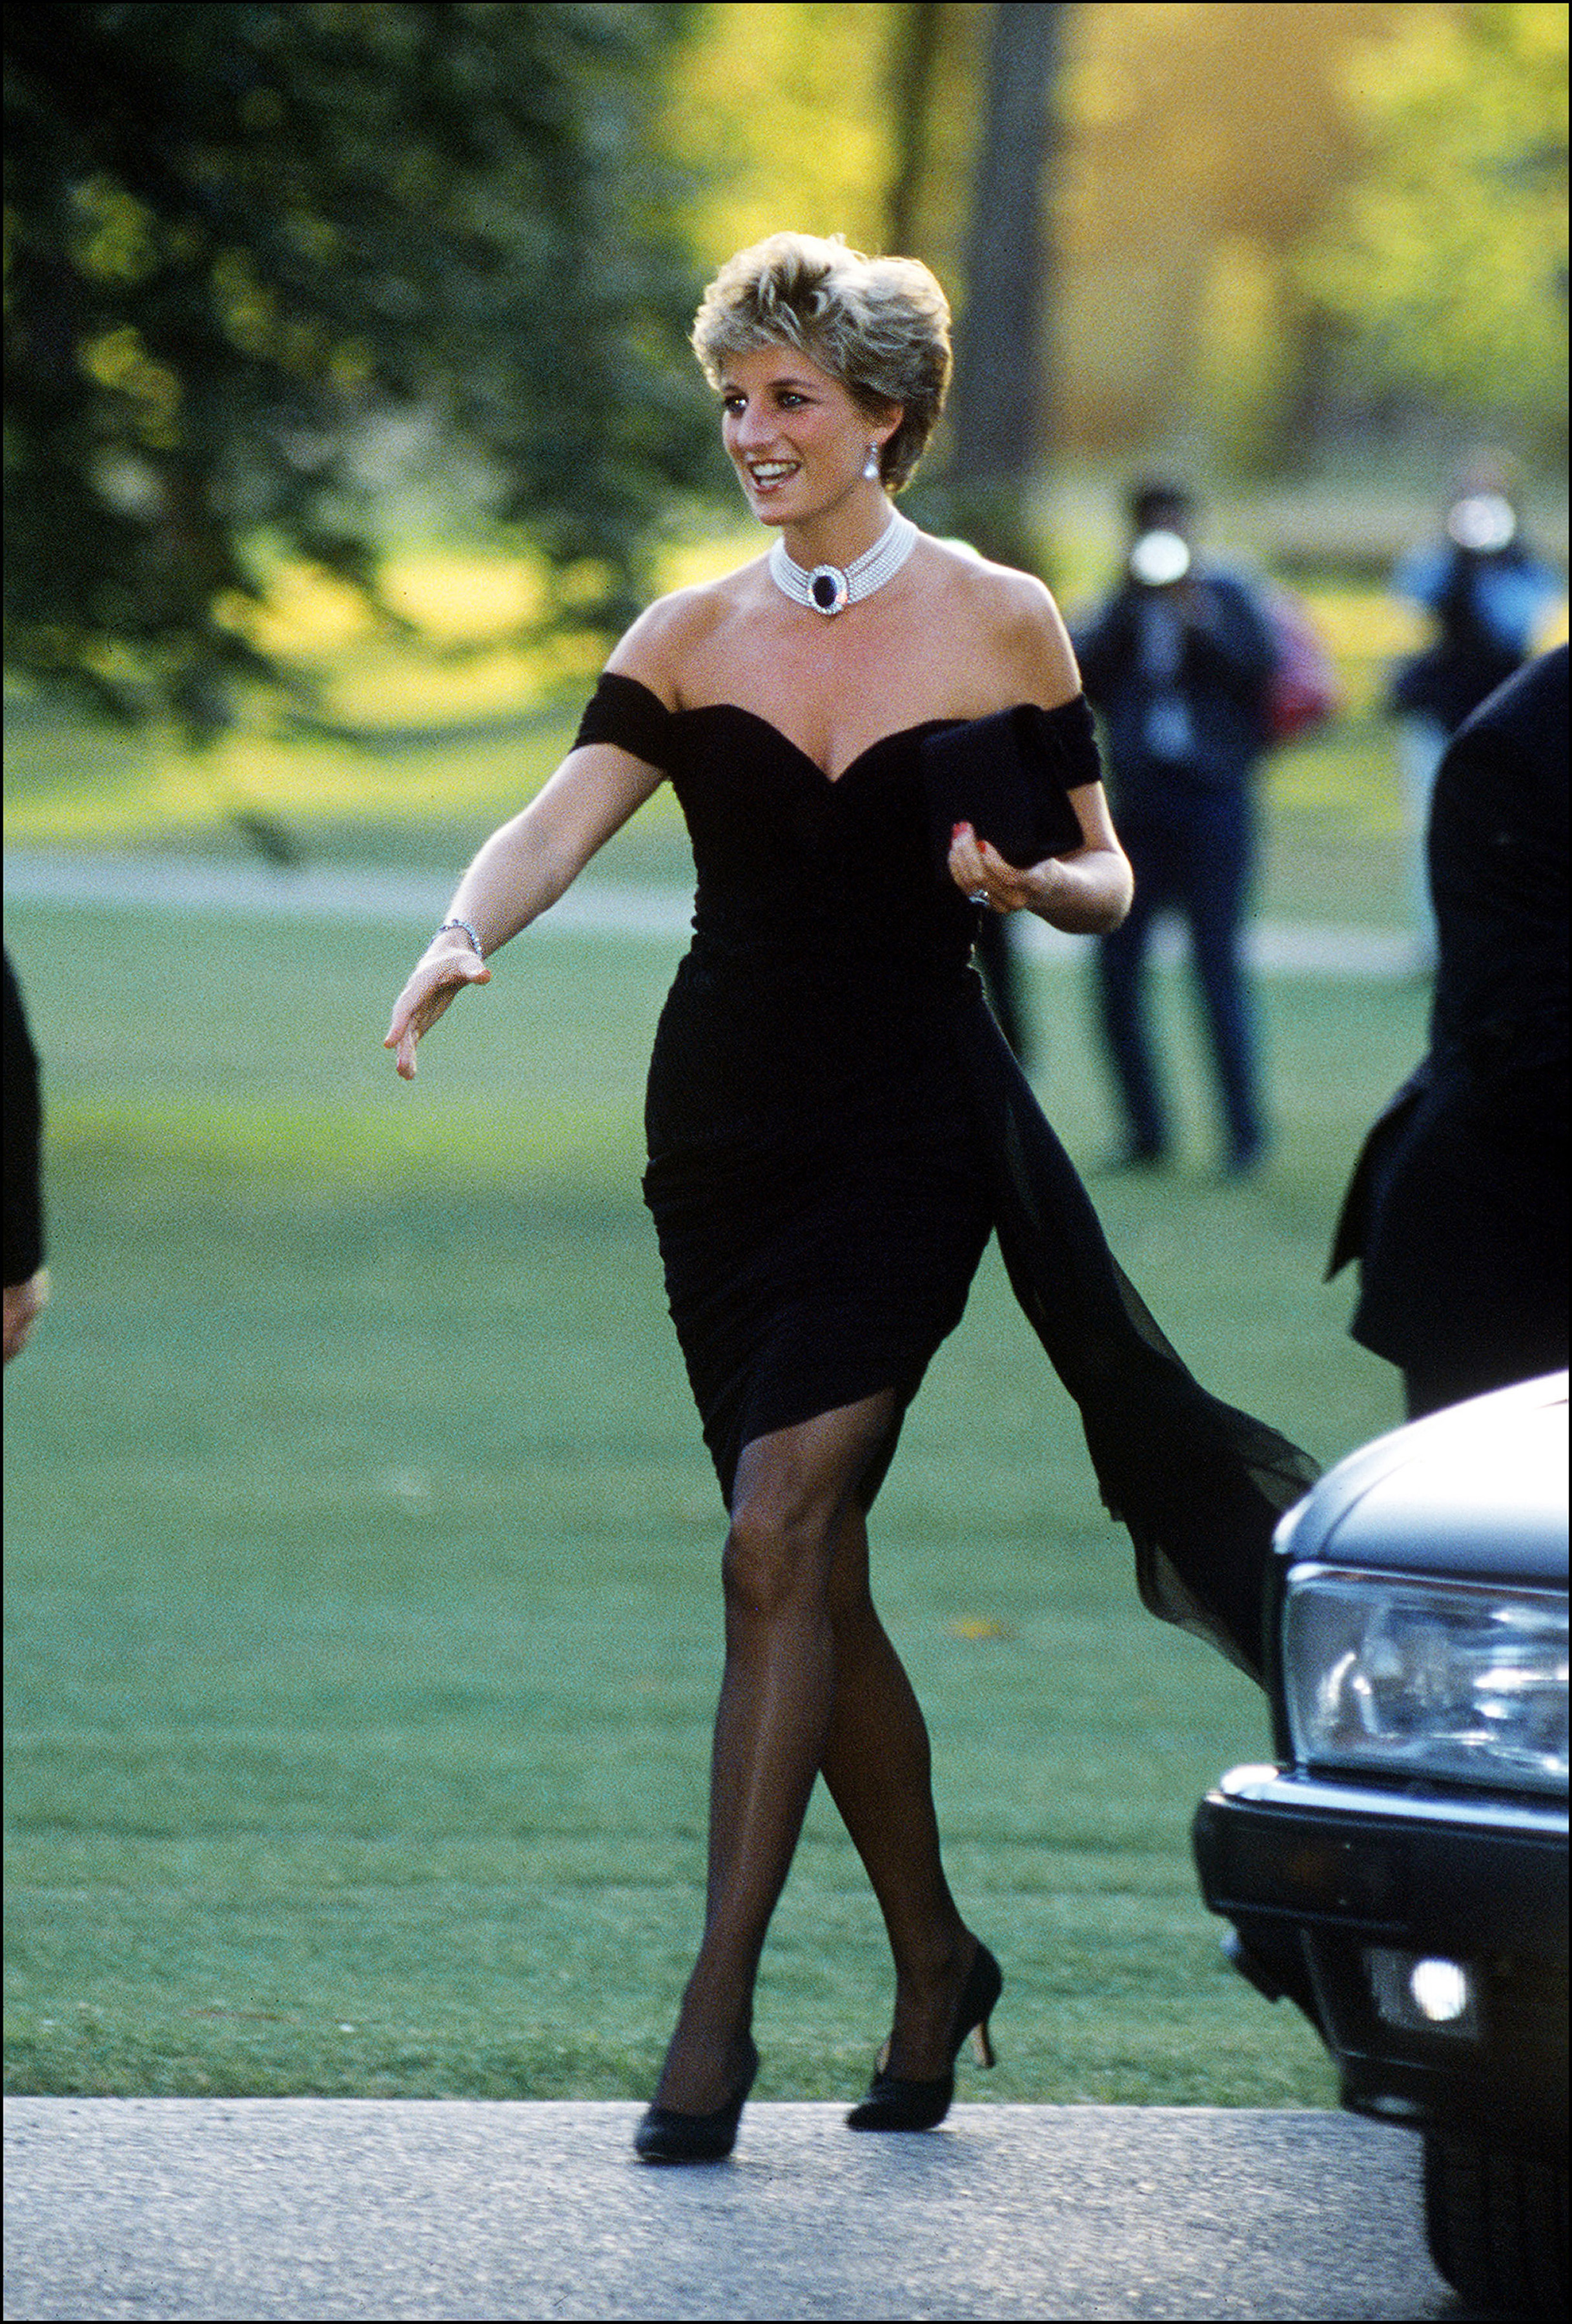 """Today marks 21 years since the tragic death of the 'people's princess'<a href=""""https://style.nine.com.au/princess-diana/2"""" target=""""_blank"""" title=""""Princess Diana"""" draggable=""""false"""">Princess Diana</a>, who died suddenly in a Paris car crash at the age of 36.<br /> <br /> During her tragically short lifetime, the Princess of Wales became a fashion pin-up credited with bringing a sense of glamour to the royal wardrobe and creating a style legacy that lives on today through her daughters-in-law – <a href=""""https://style.nine.com.au/2017/01/13/09/21/kate-middleton-blue-princess-di-nod-fashion-coat"""" target=""""_blank"""" title=""""Kate, the Duchess of Cambridge """" draggable=""""false"""">Kate, the Duchess of Cambridge </a>and <a href=""""https://style.nine.com.au/2018/07/05/10/31/meghan-markle-princess-diana-clothes-wardrobe-fashion"""" target=""""_blank"""" title=""""Meghan, Duchess of Sussex."""" draggable=""""false"""">Meghan, Duchess of Sussex.</a><br /> <br /> Diana's close association with fashion began in 1981 with her fairy tale wedding dress by British design duo, David and Elizabeth Emanuel. Later evolving to her blue velvet Victor Edelstein gown, worn on the White House dancefloor with John Travolta in 1985, to streamlined Catherine Walker gowns and Versace frocks in the '90s.<br /> <br /> """"A lot of designers say that she had this look about her that she'd just sort of run in, and run her fingers through her hair,"""" Eleri Lynn told <em><a href=""""https://www.vanityfair.com/london/2017/02/princess-diana-her-fashion-story#~o"""" target=""""_blank"""" draggable=""""false"""">Vanity Fair.</a></em><br /> <br /> """"She had really sort of transcended fashion and achieved an incredible chic and elegance,"""" Eleri added.<br /> <br /> """"All you saw was her, and the clothes became secondary to her own presence and her work.""""<br /> <br /> With the 21st anniversary of Princess Diana's death next week, we take a look back at some of her most iconic style moments."""